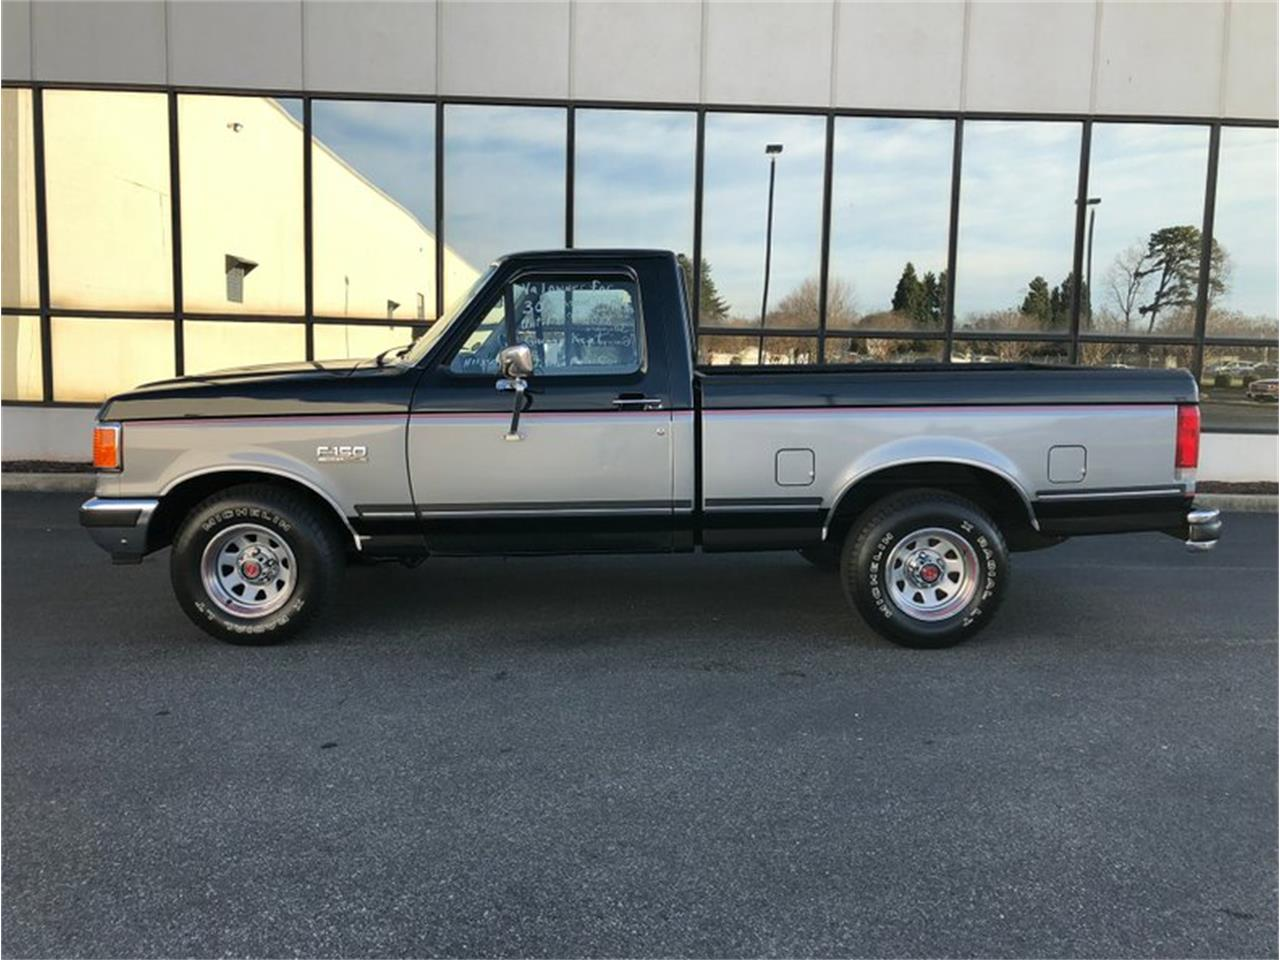 Large Picture of 1988 F150 located in Greensboro North Carolina Auction Vehicle Offered by GAA Classic Cars Auctions - PGHA